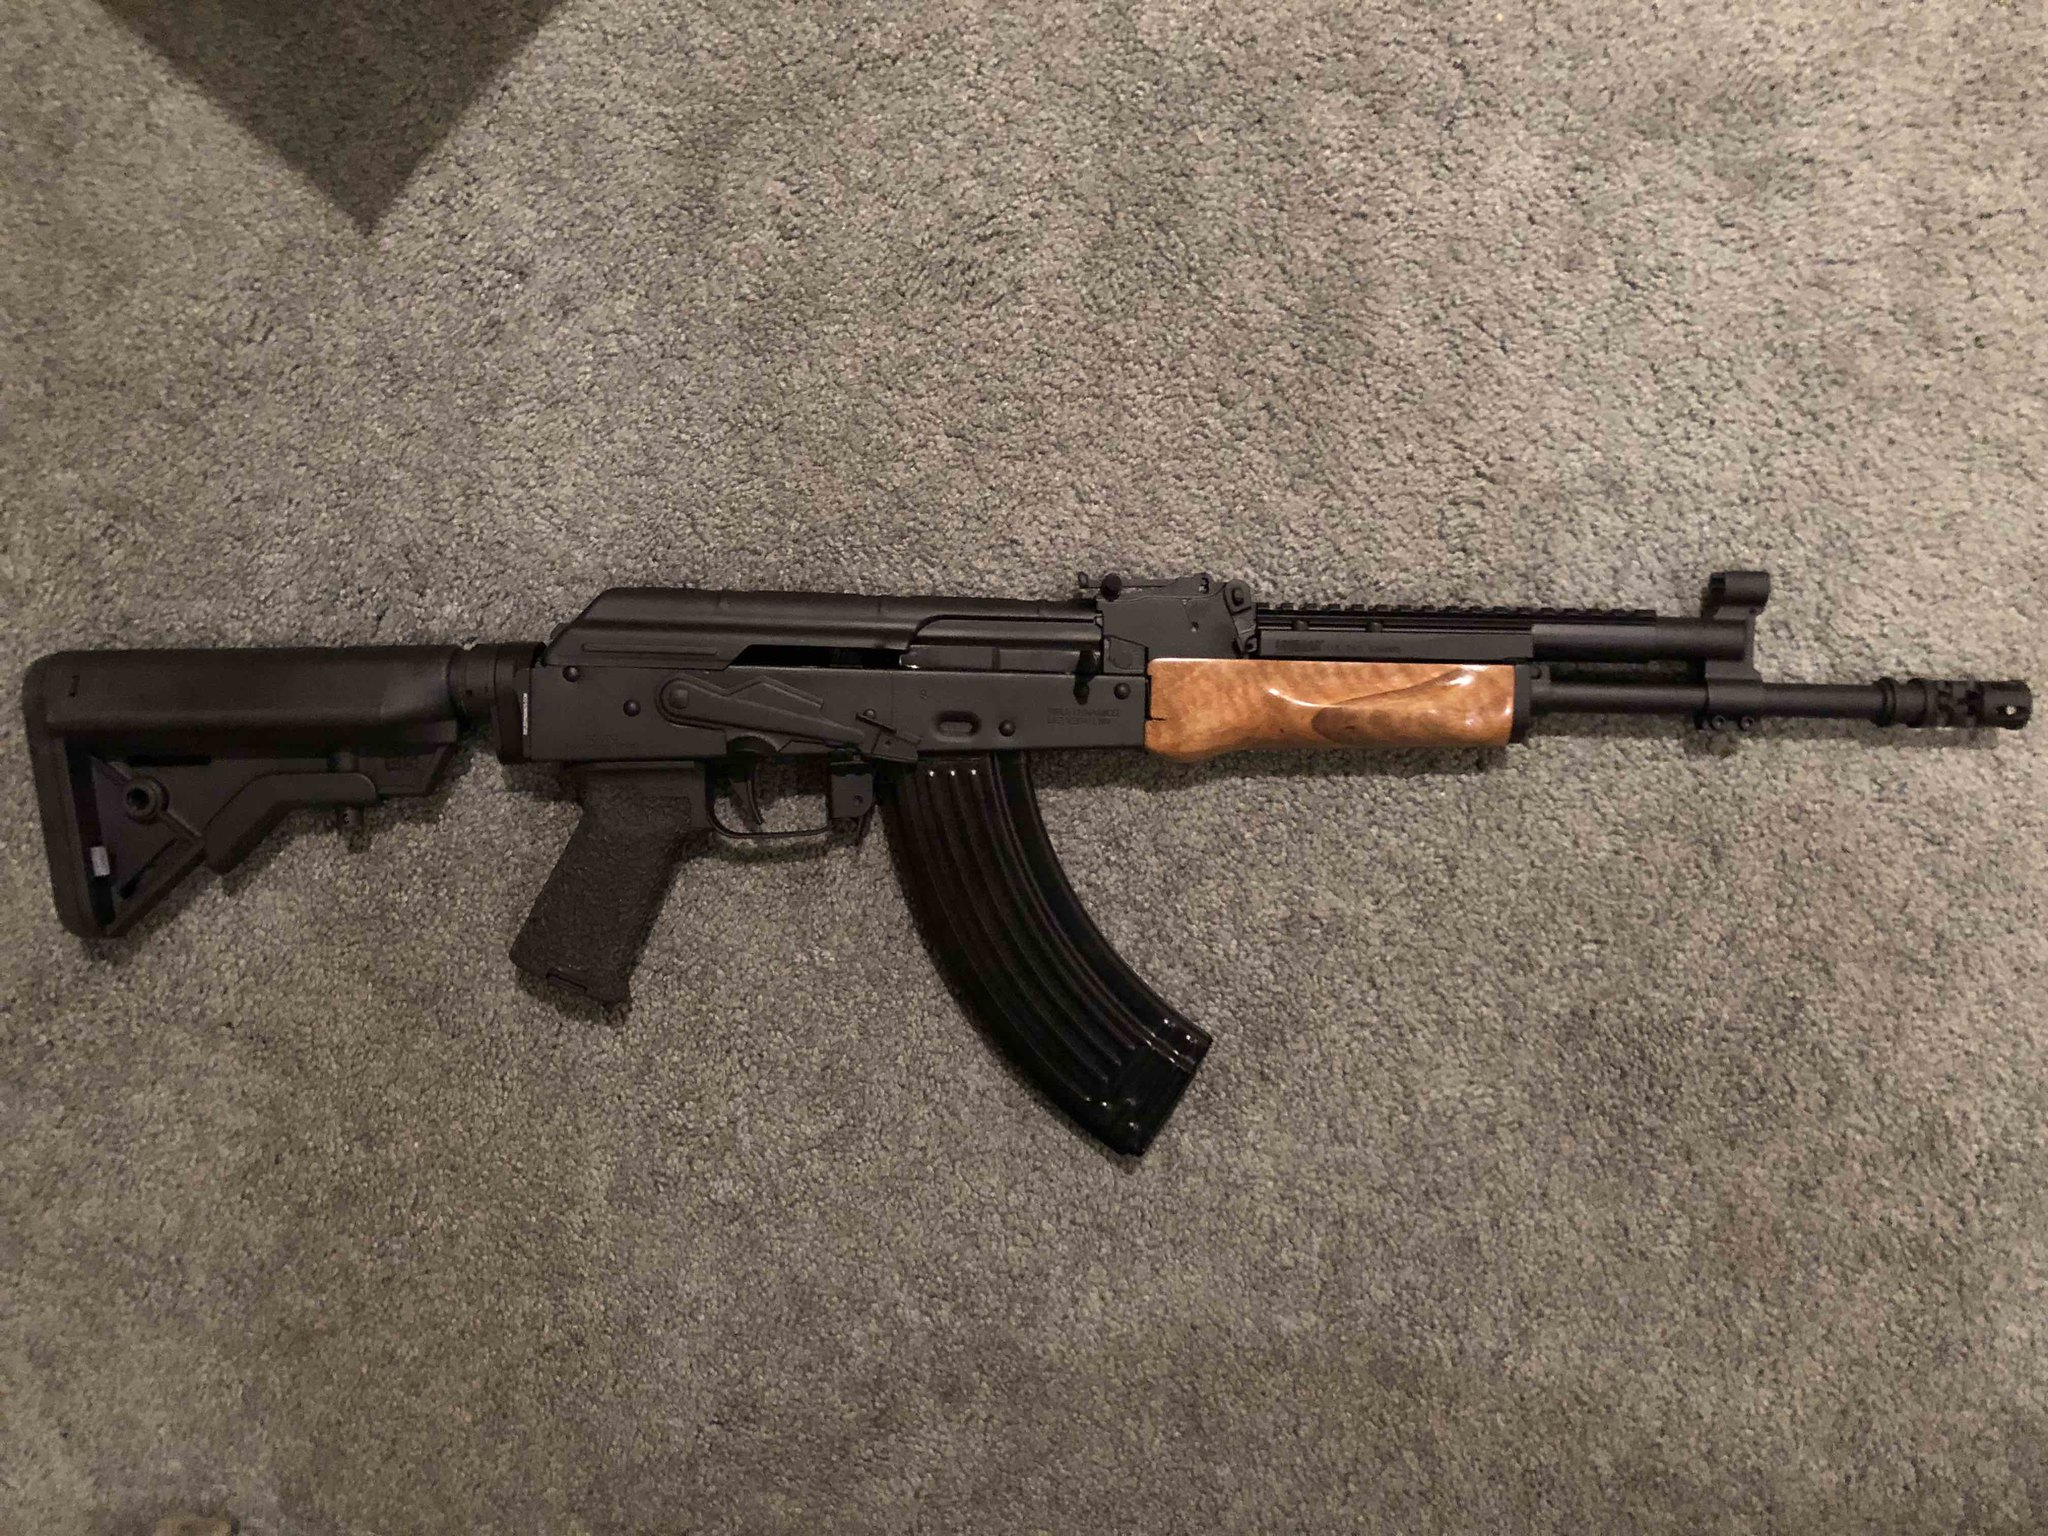 Post your AR/AK Pics Here!